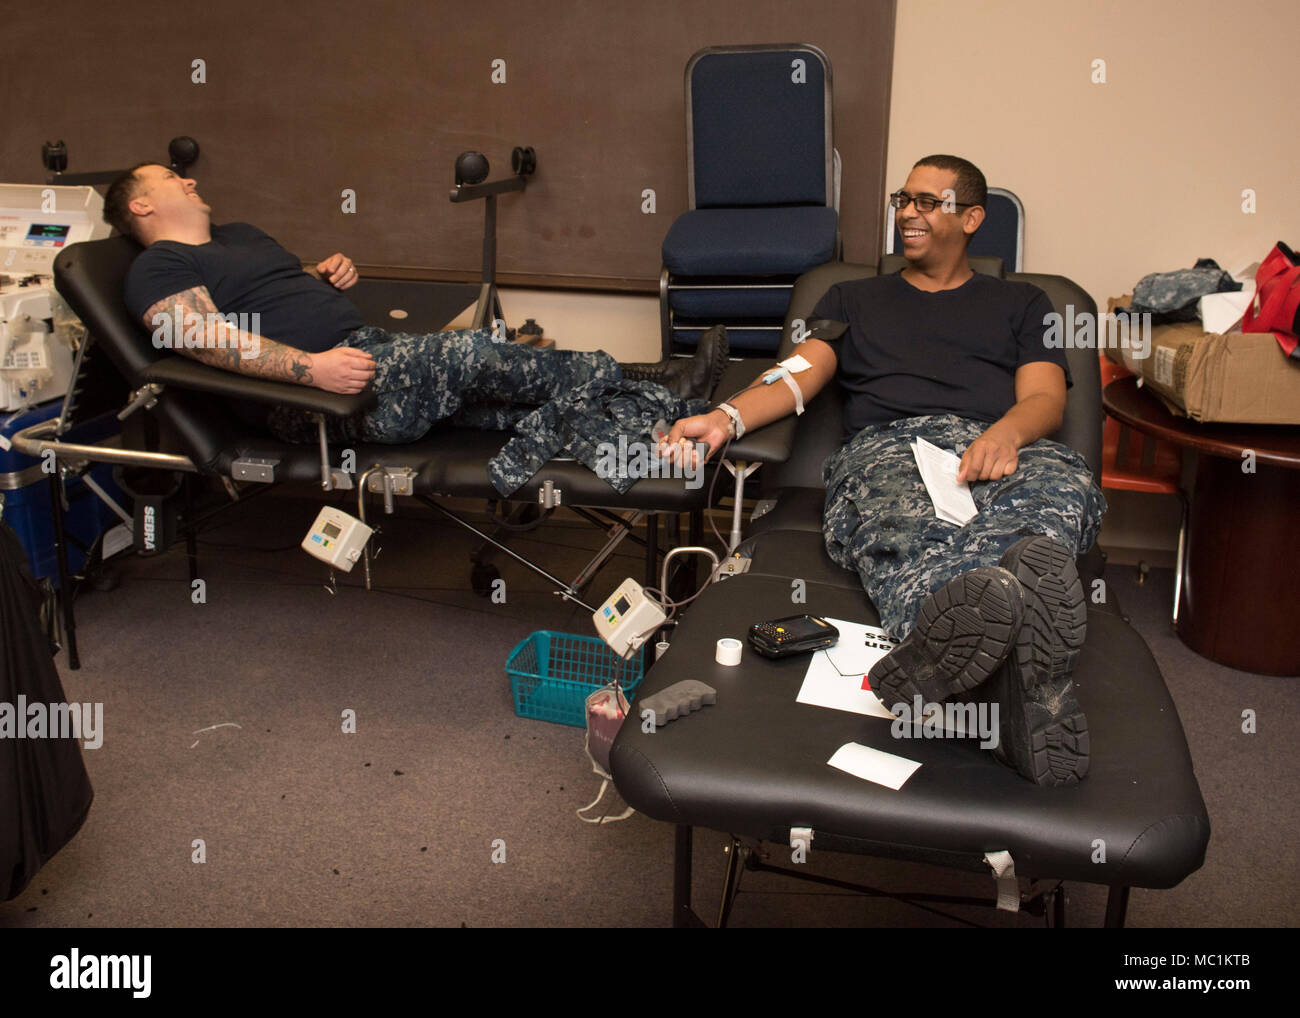 180124-N-LI612-027 KINGS BAY (Jan. 24, 2018) Chief Machinist's Mate (Nuclear) Jace Haster, left, shares a laugh with Electricians Mate 3rd Class Ryan Shaw during a blood drive onboard Naval Submarine Base Kings Bay (NSBKB). NSBKB is the east coast home to the Ohio-class submarine. (U.S. Navy photo by Mass Communication Specialist 2nd Class Eli K. Buguey/Released.) - Stock Image